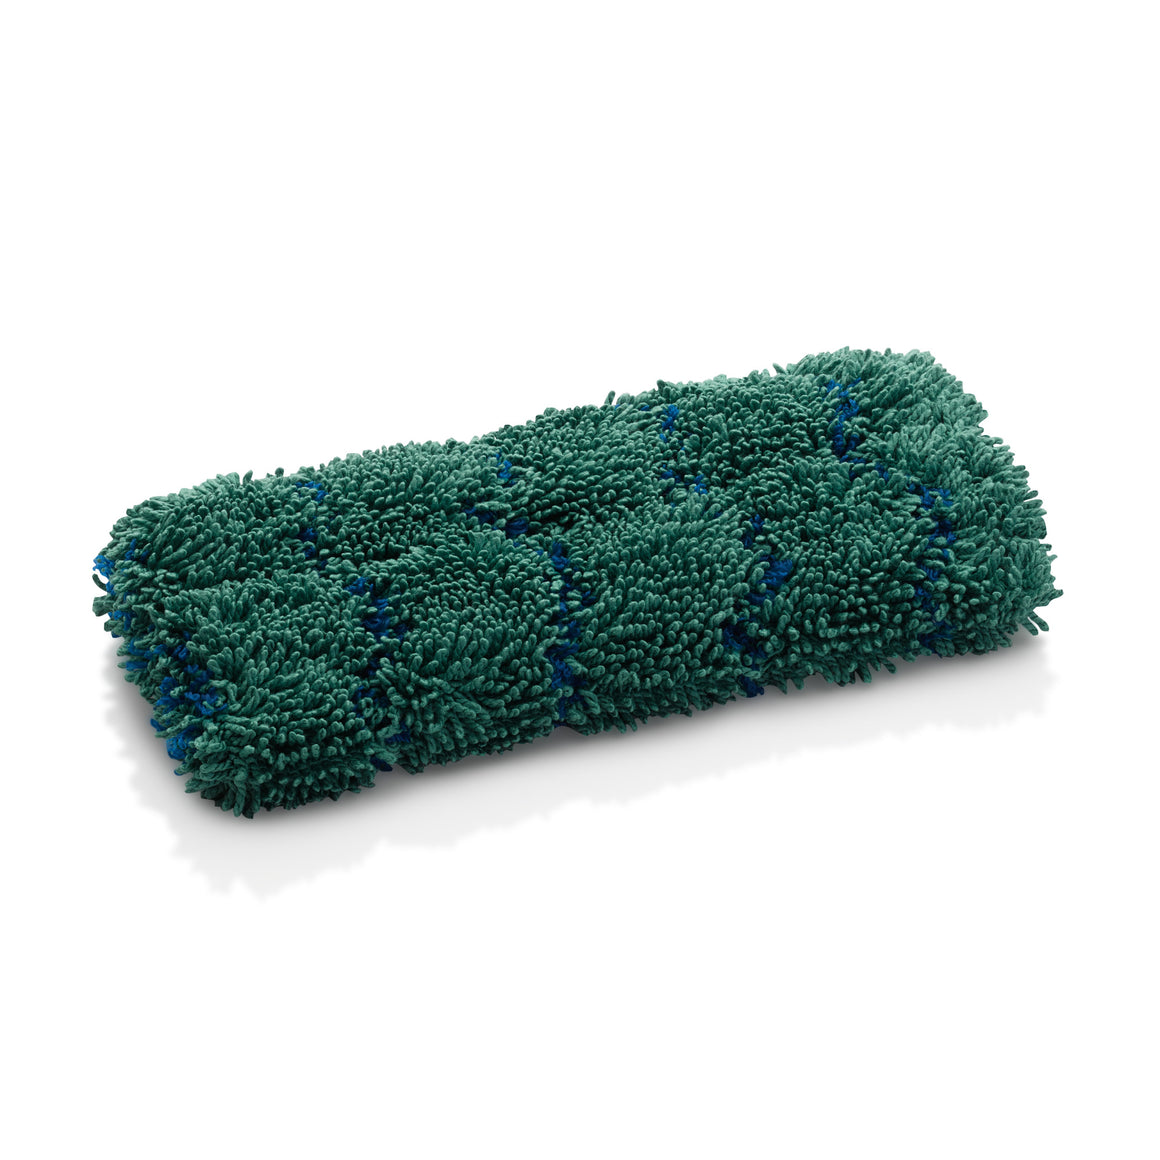 Kitchen Dynamo - Durable Microfiber Alternative to Smelly Disposable Sponges